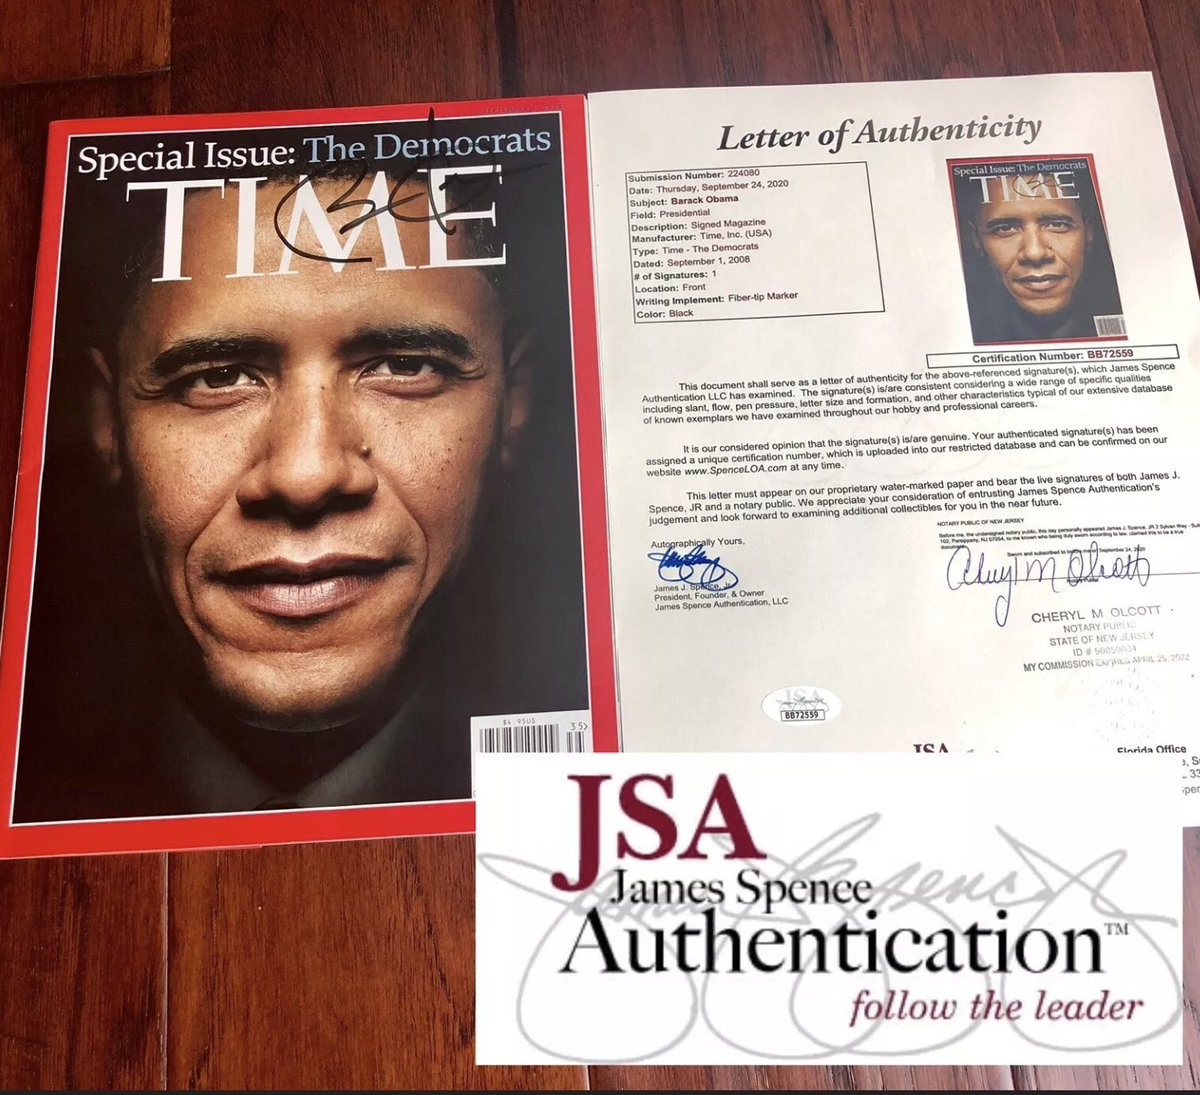 Check out  BARACK OBAMA  Authentic autograph Time Magazine Cover **WITH PROOF** Full authentication by JSA.  https://t.co/UDLPqceT9v @eBay  #obama @BarackObama #biden @JoeBiden #autographs #autograph #history https://t.co/TAi6aexjrJ